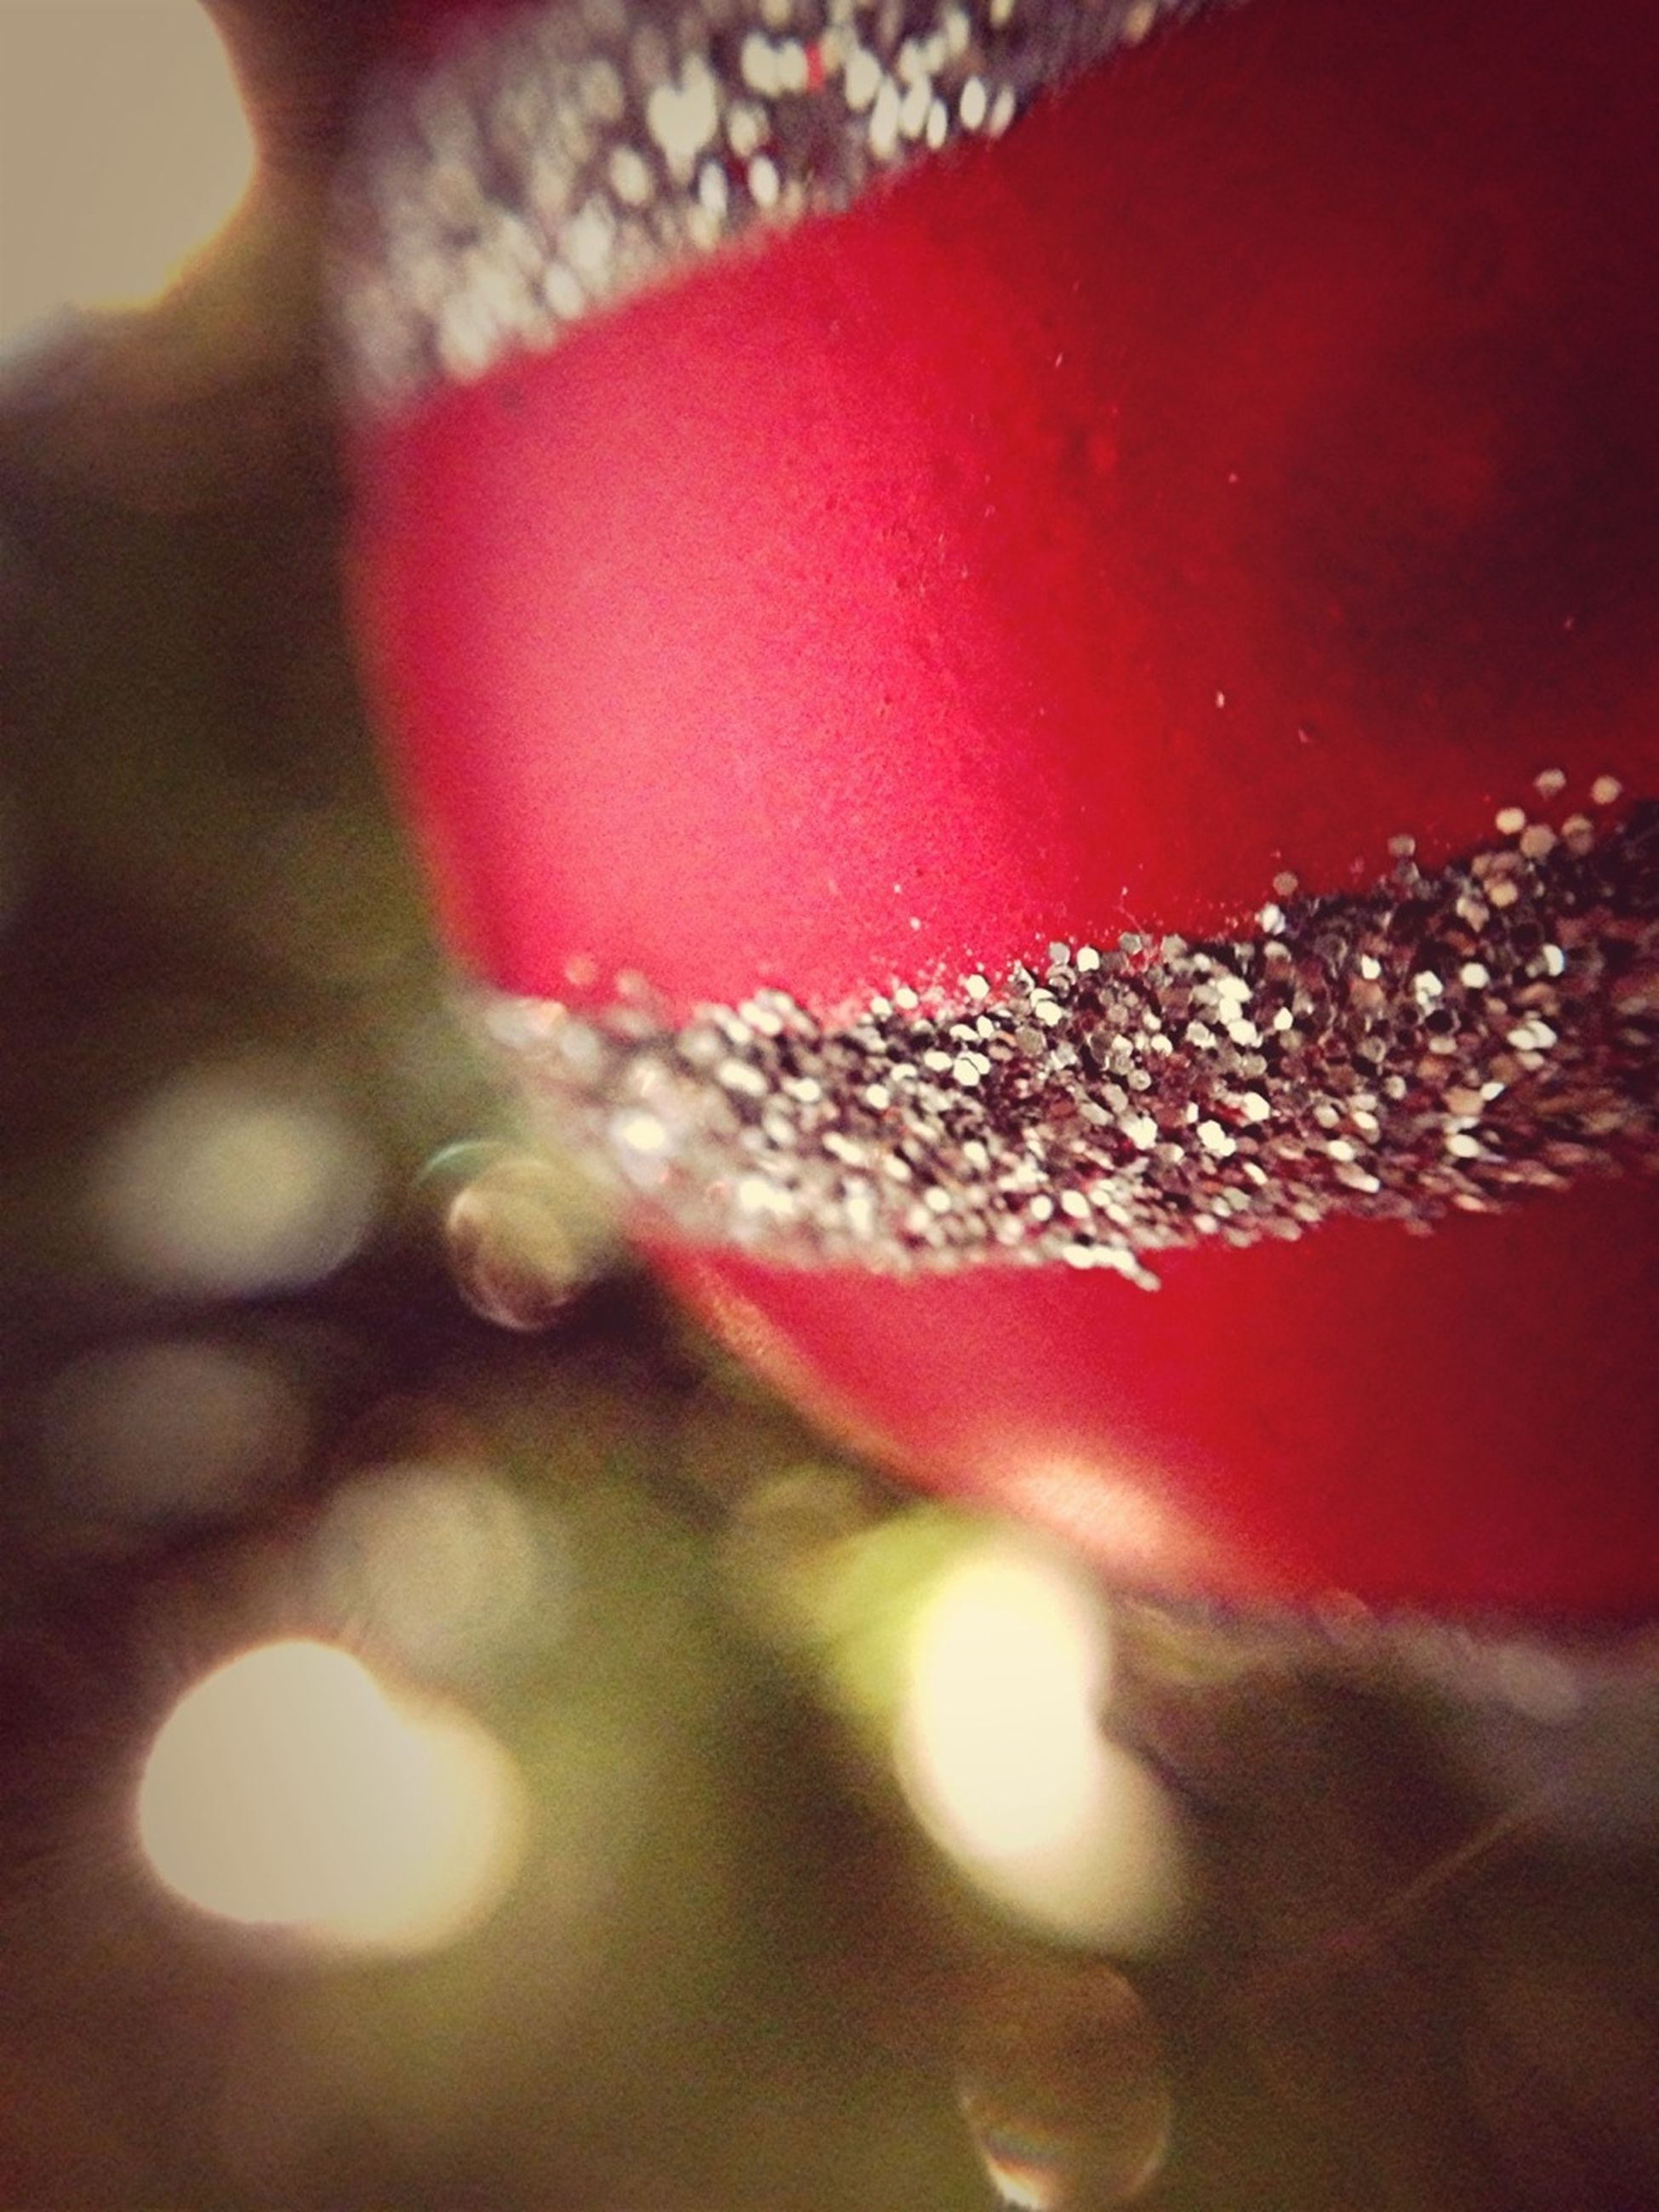 red, close-up, indoors, focus on foreground, selective focus, no people, glass - material, decoration, freshness, transparent, christmas, still life, celebration, pink color, illuminated, detail, defocused, fragility, christmas decoration, reflection